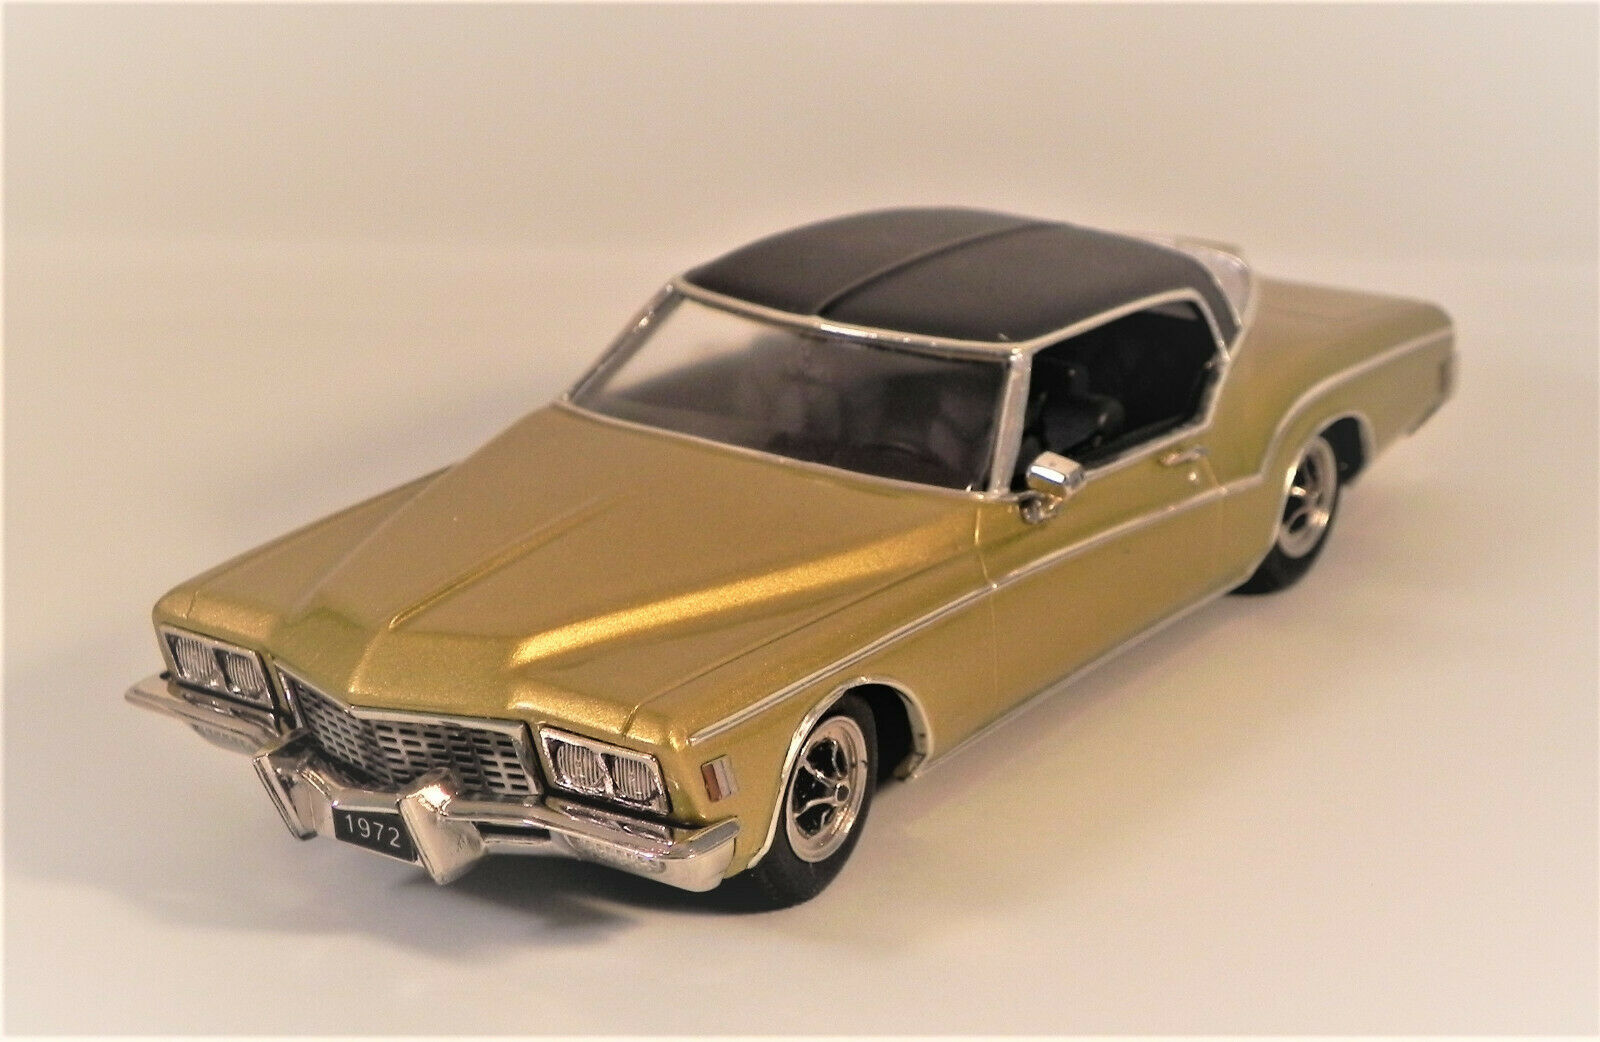 WMCE 1972 BUICK RVIERA - Gold - SPECIAL EDITION- WMCE 36